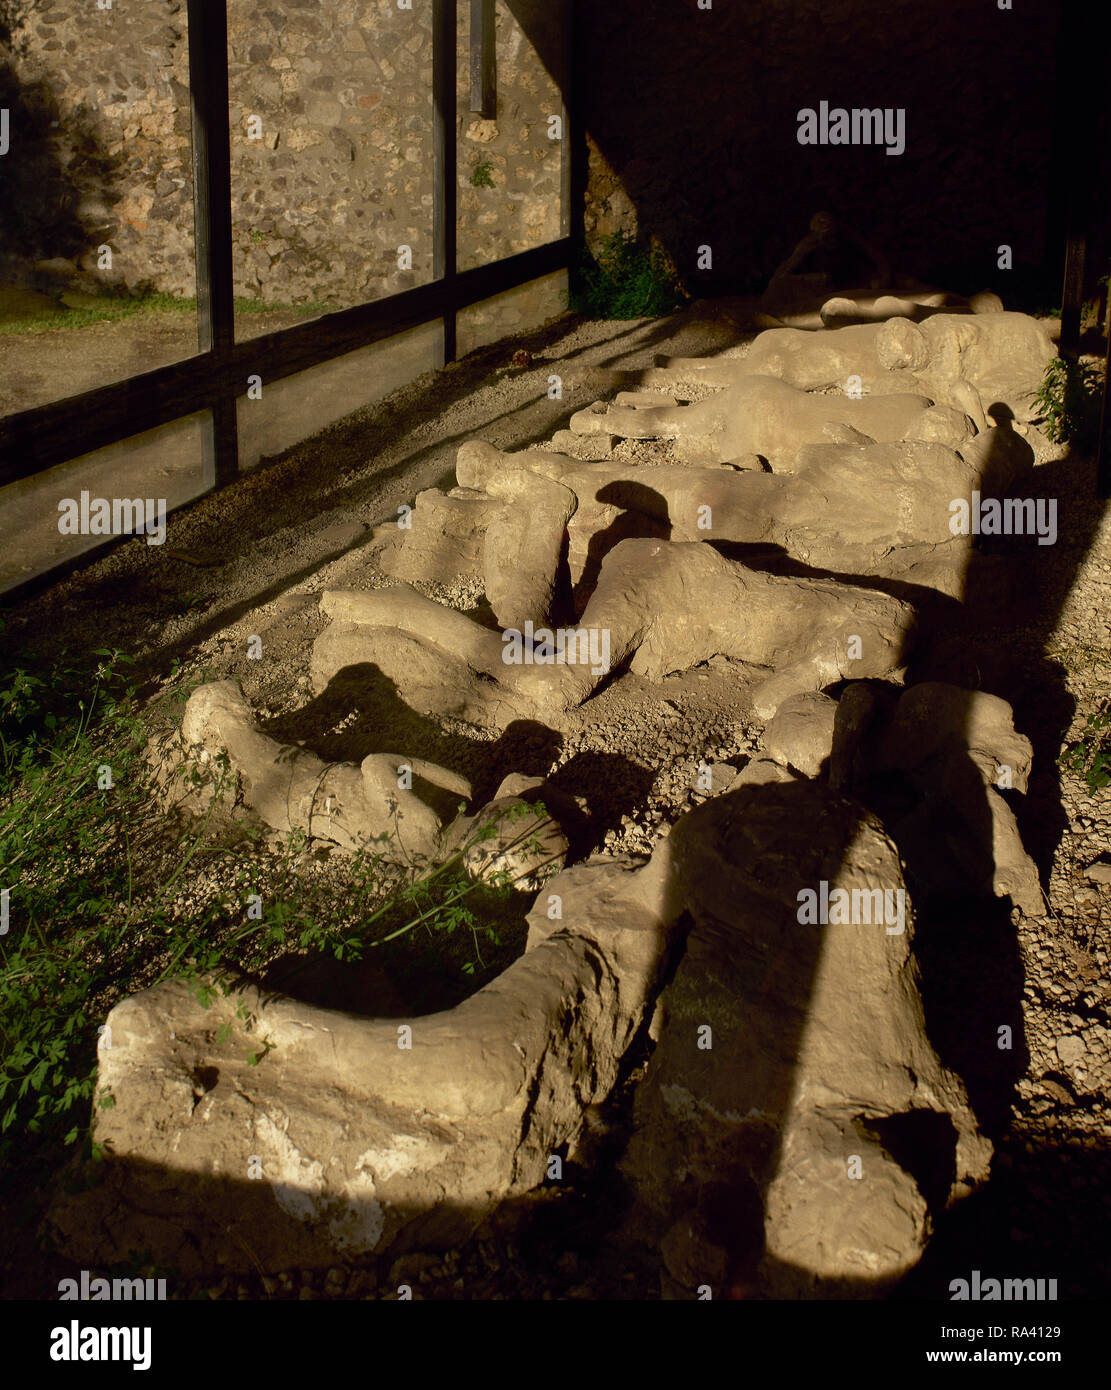 Italy. Pompeii. Plaster casts of victim's bodies at the Garden of the Fugitives. The bodies of 13 people who were buried by the ashes as they attempted to flee Pompeii during the 79 AD eruption of the Vesuvius volcano. Campania. - Stock Image